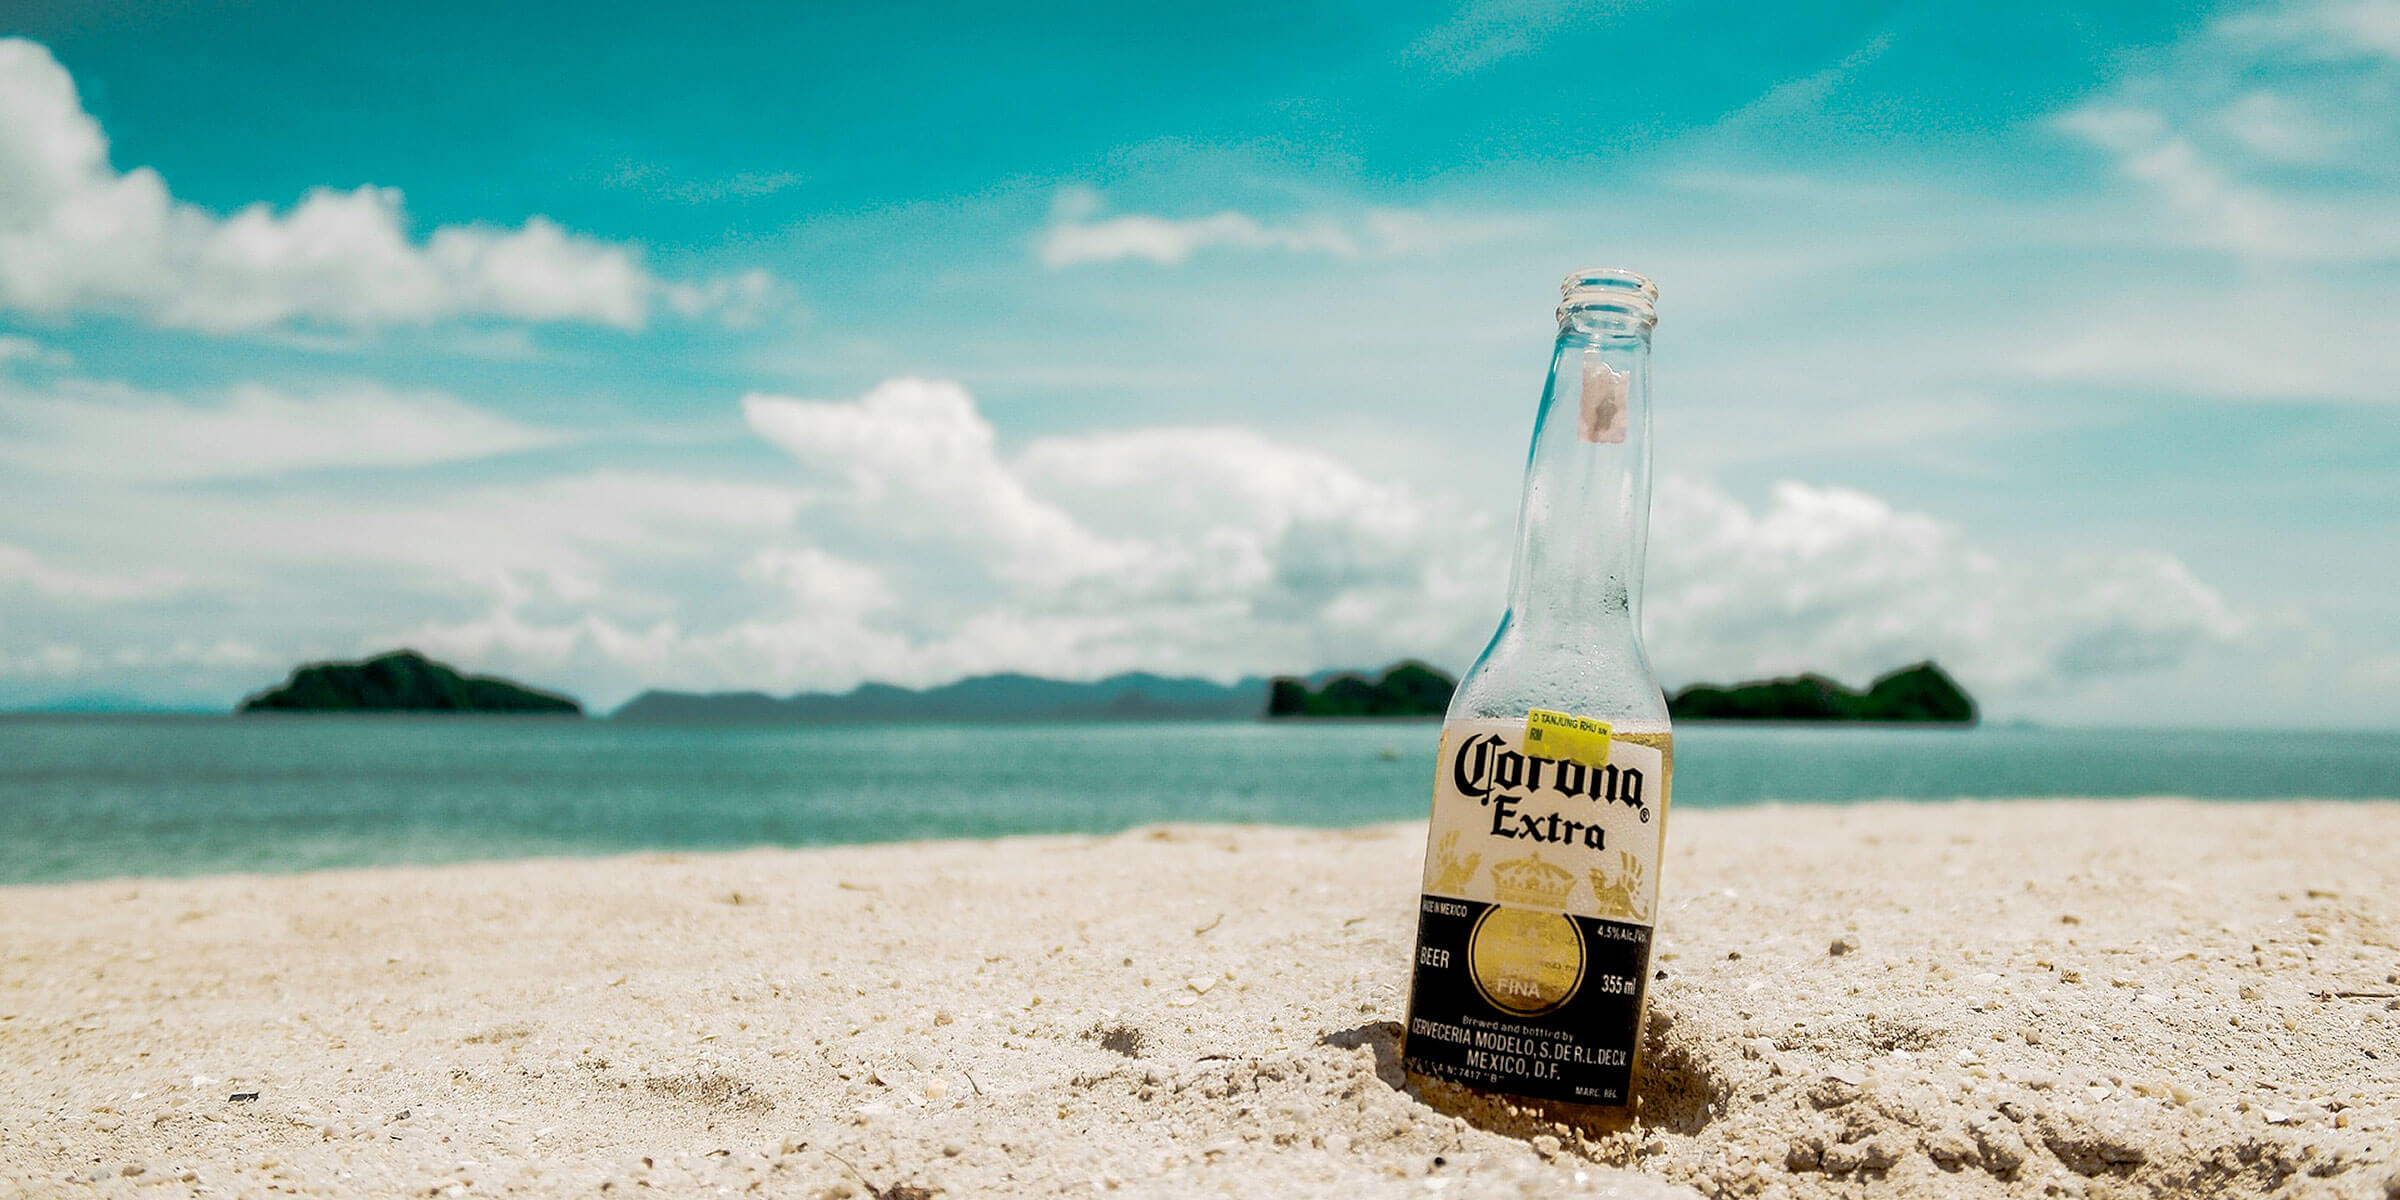 An empty bottle of Corona Extra burrowed into the sand on a beach.